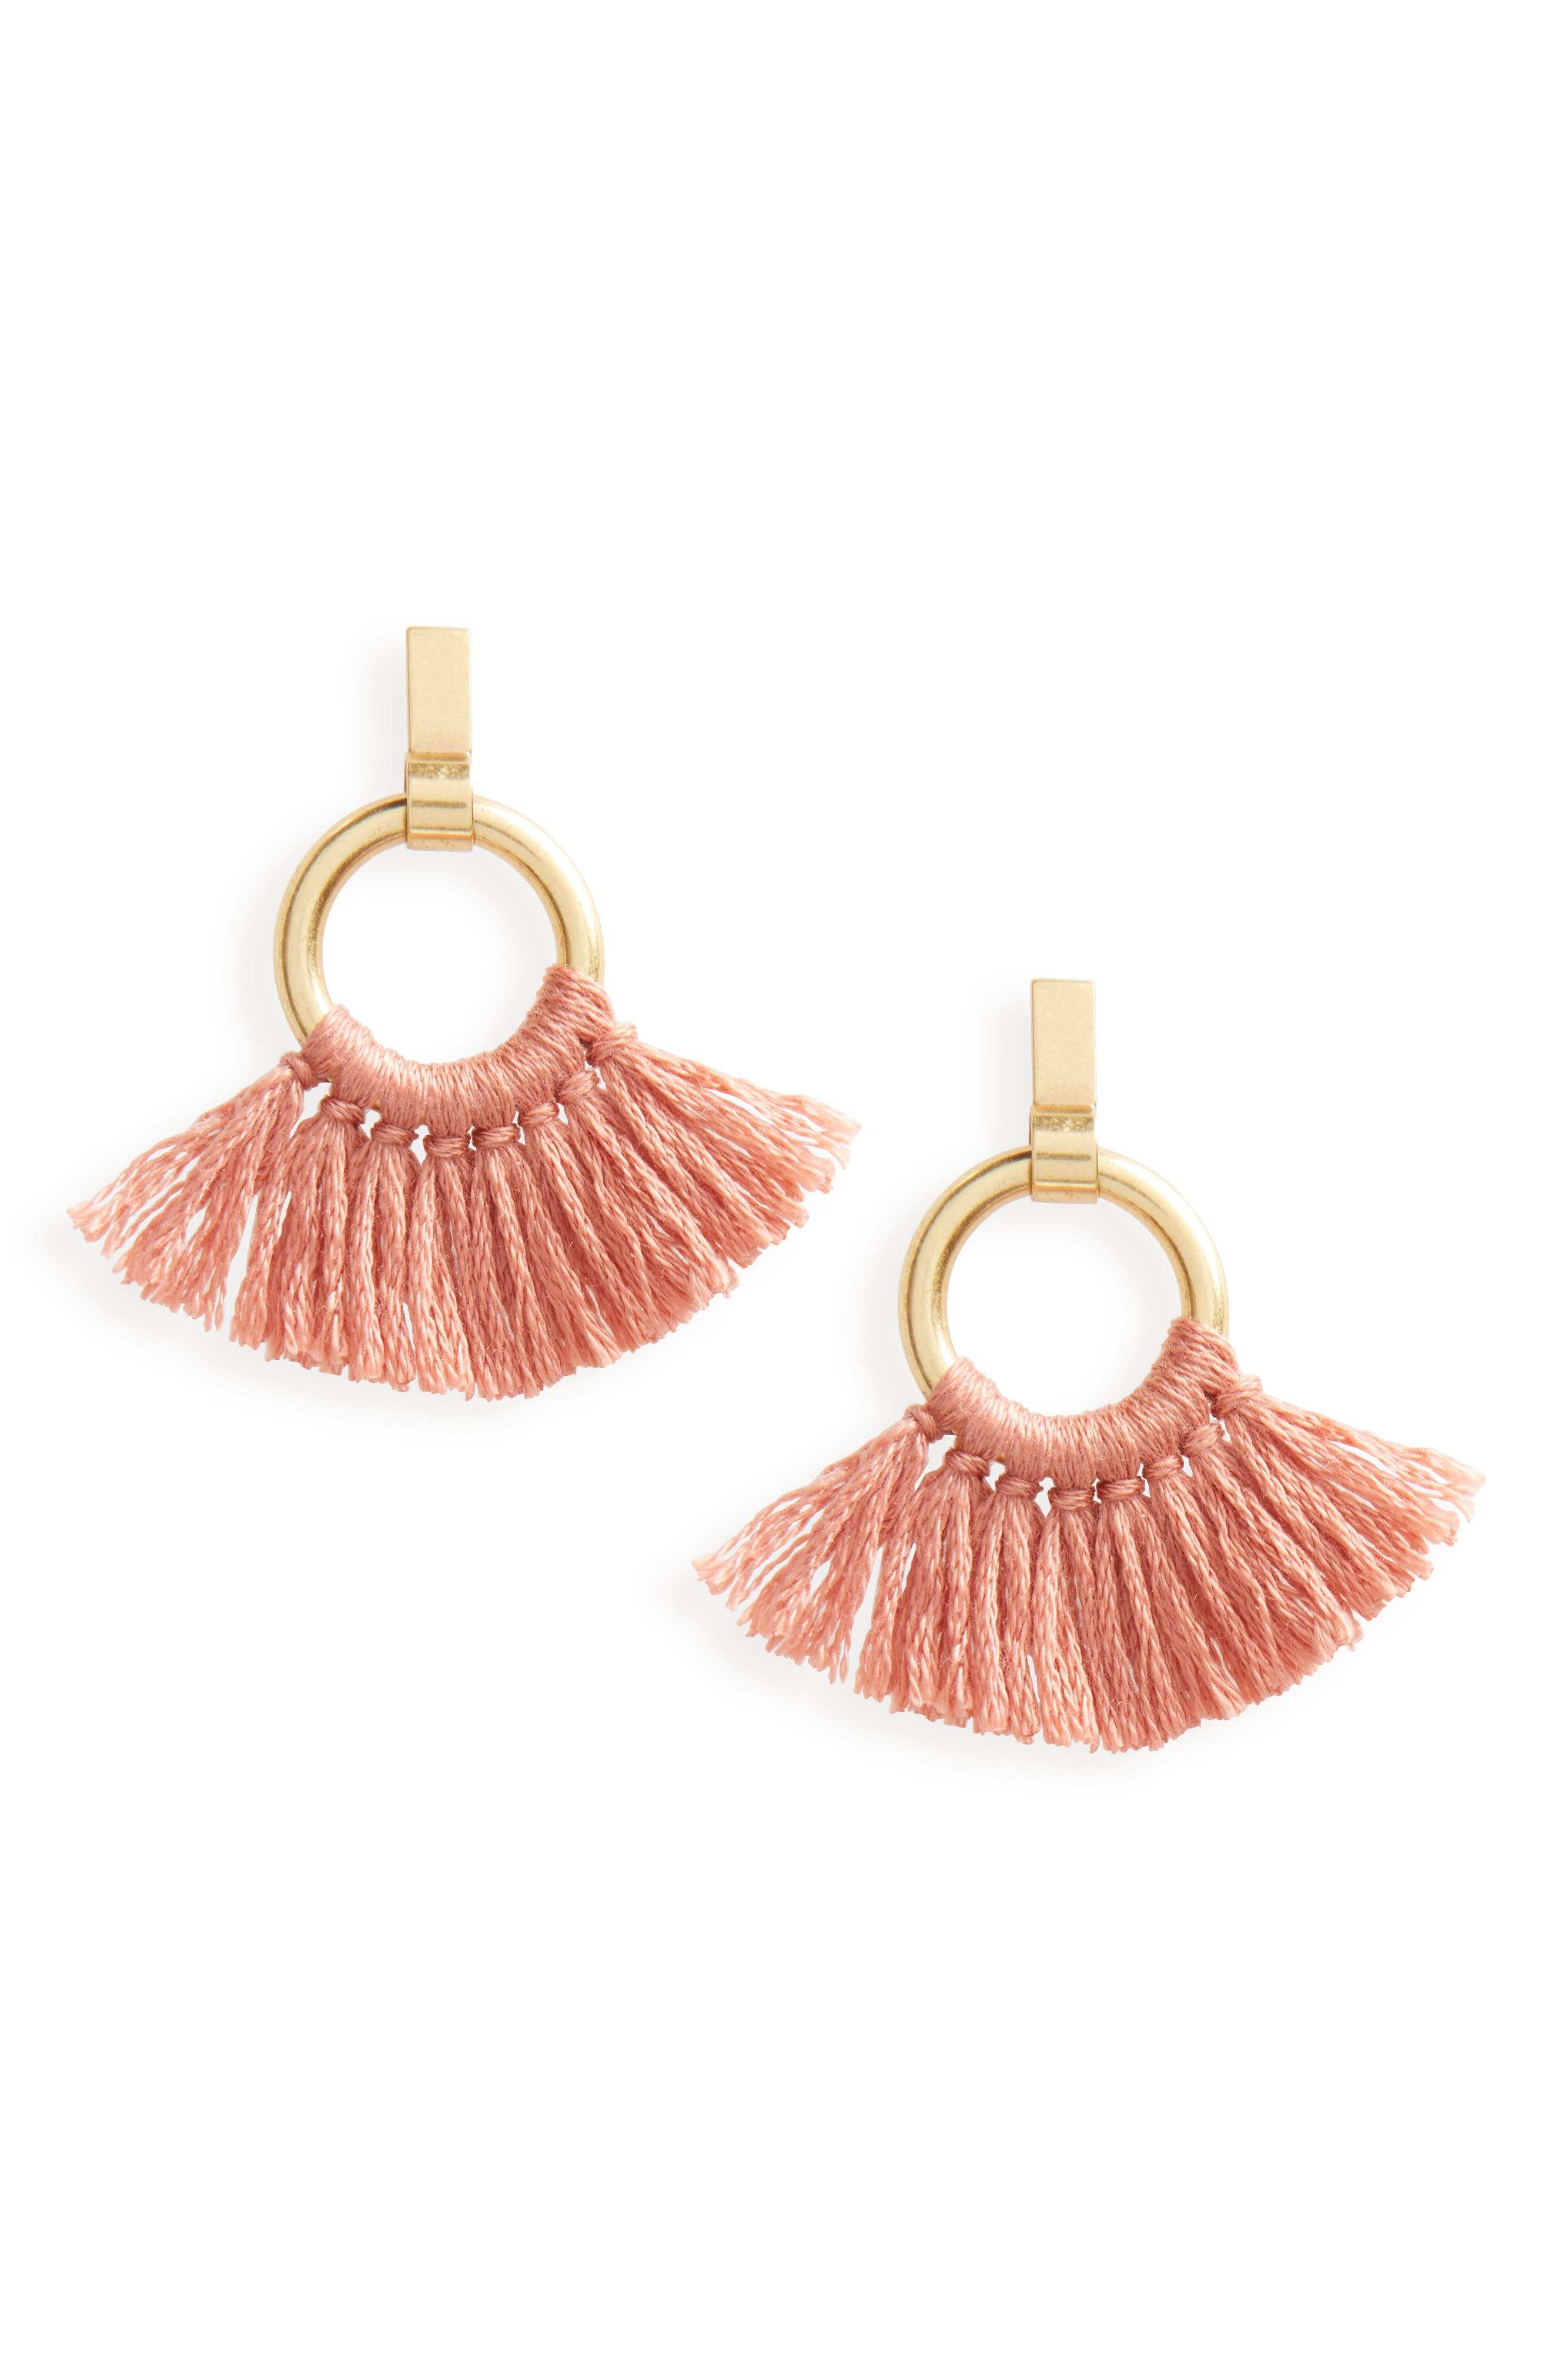 Tassel Wrap Hoop Earrings,                         Main,                         color, 710